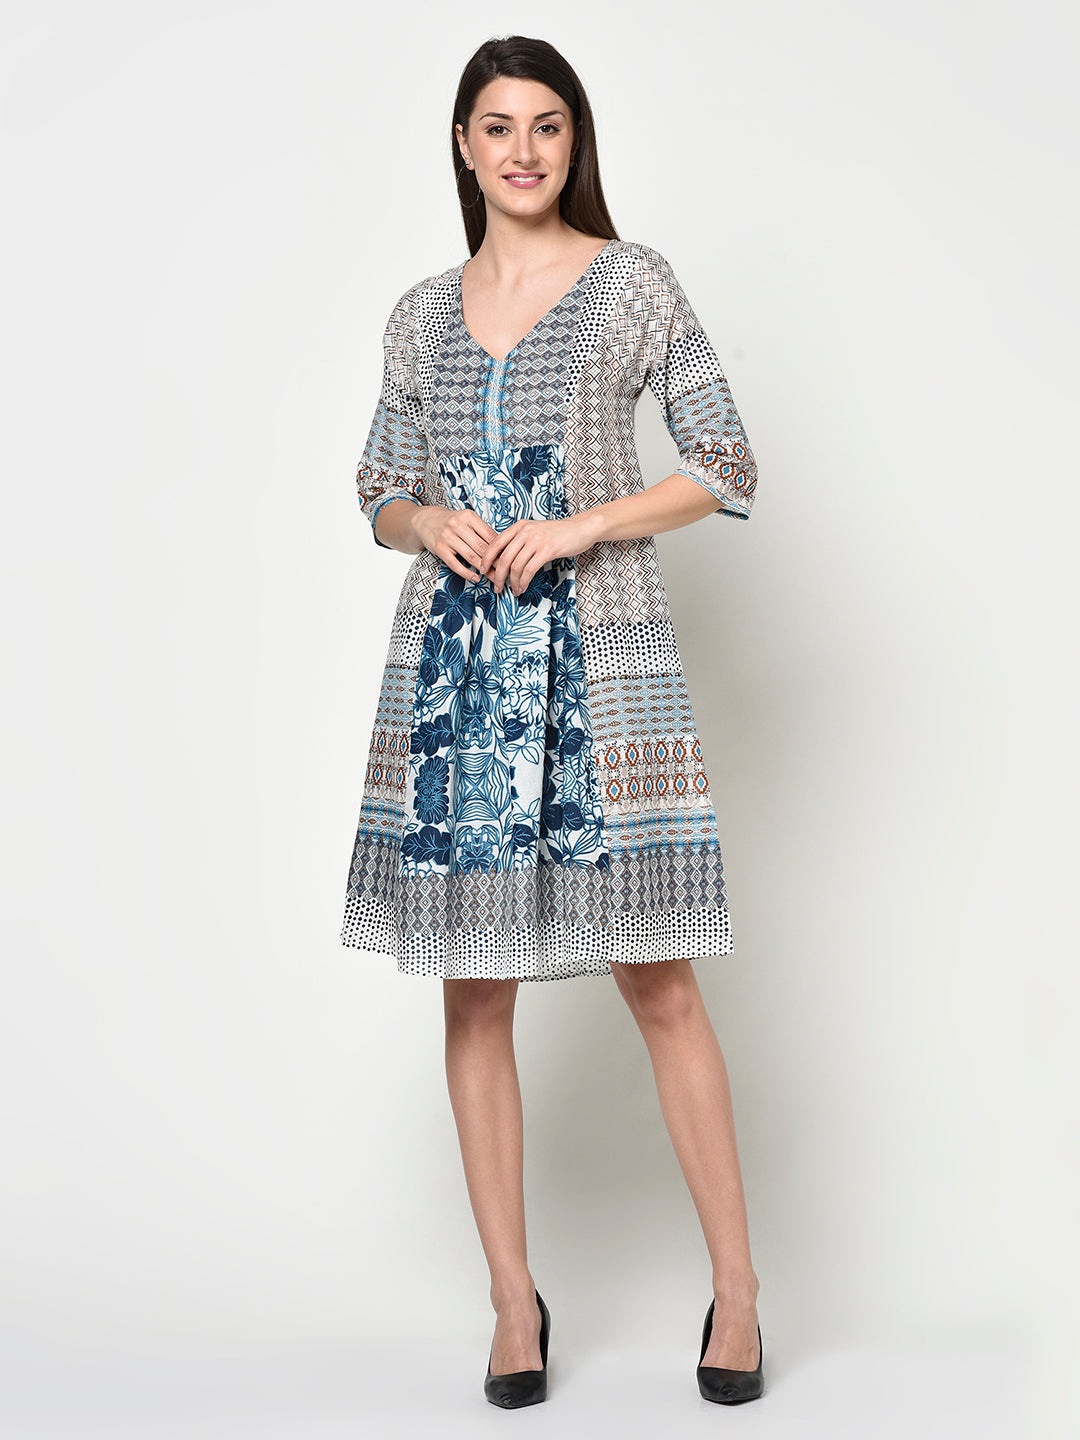 COTTON SLUB PRINTED LADIES DRESS - Avsoy